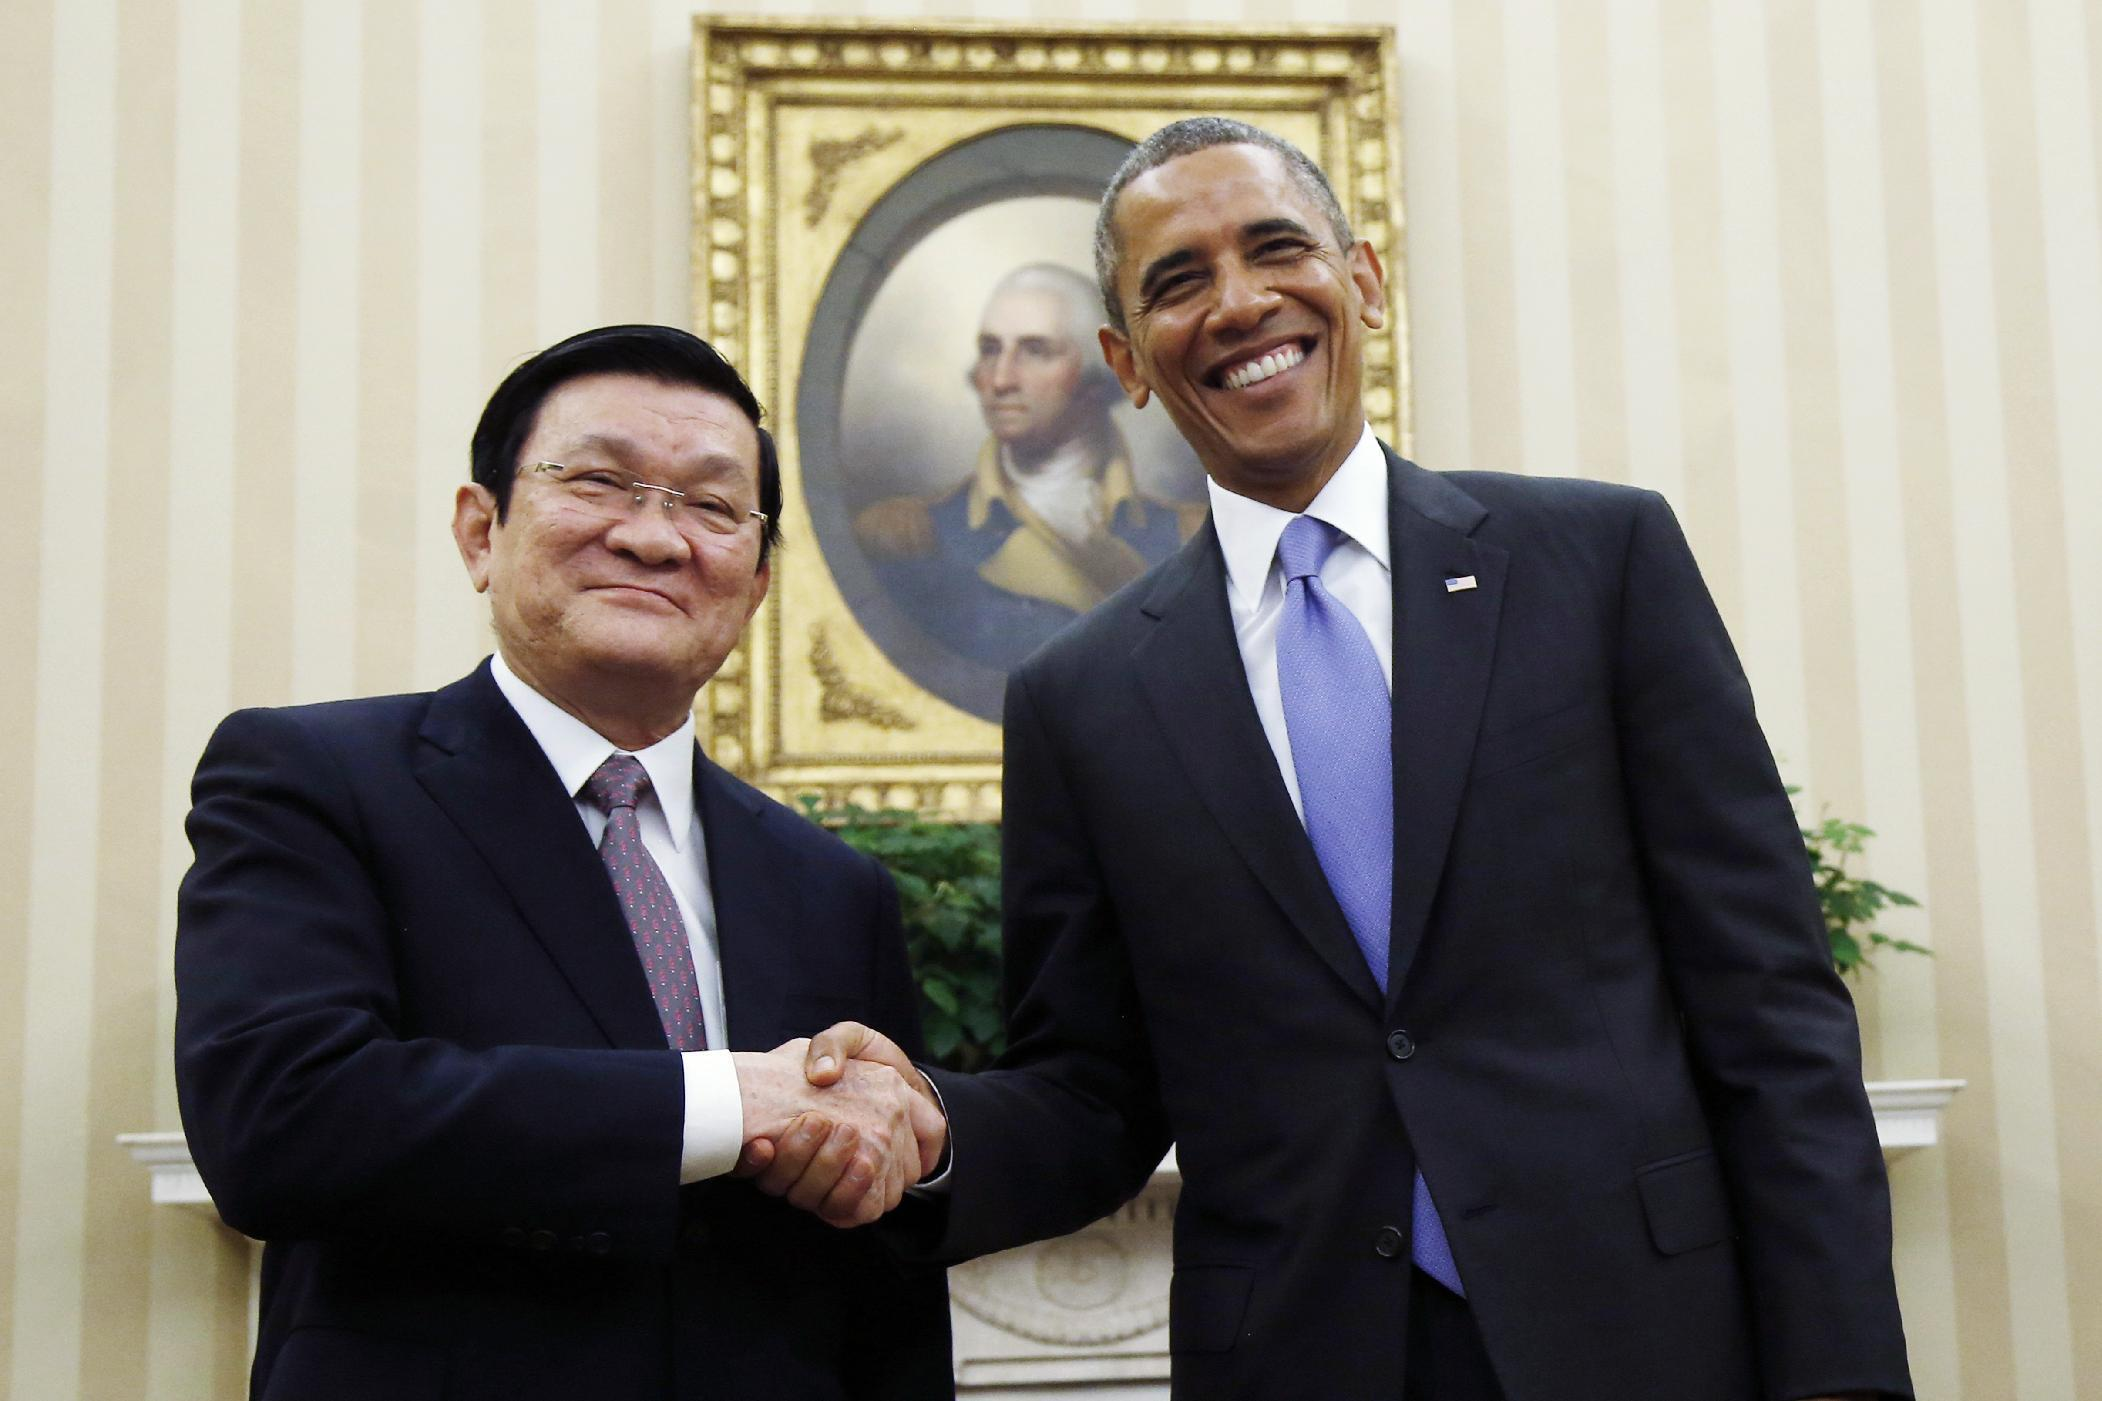 Vietnam and the US test their hard-won friendship